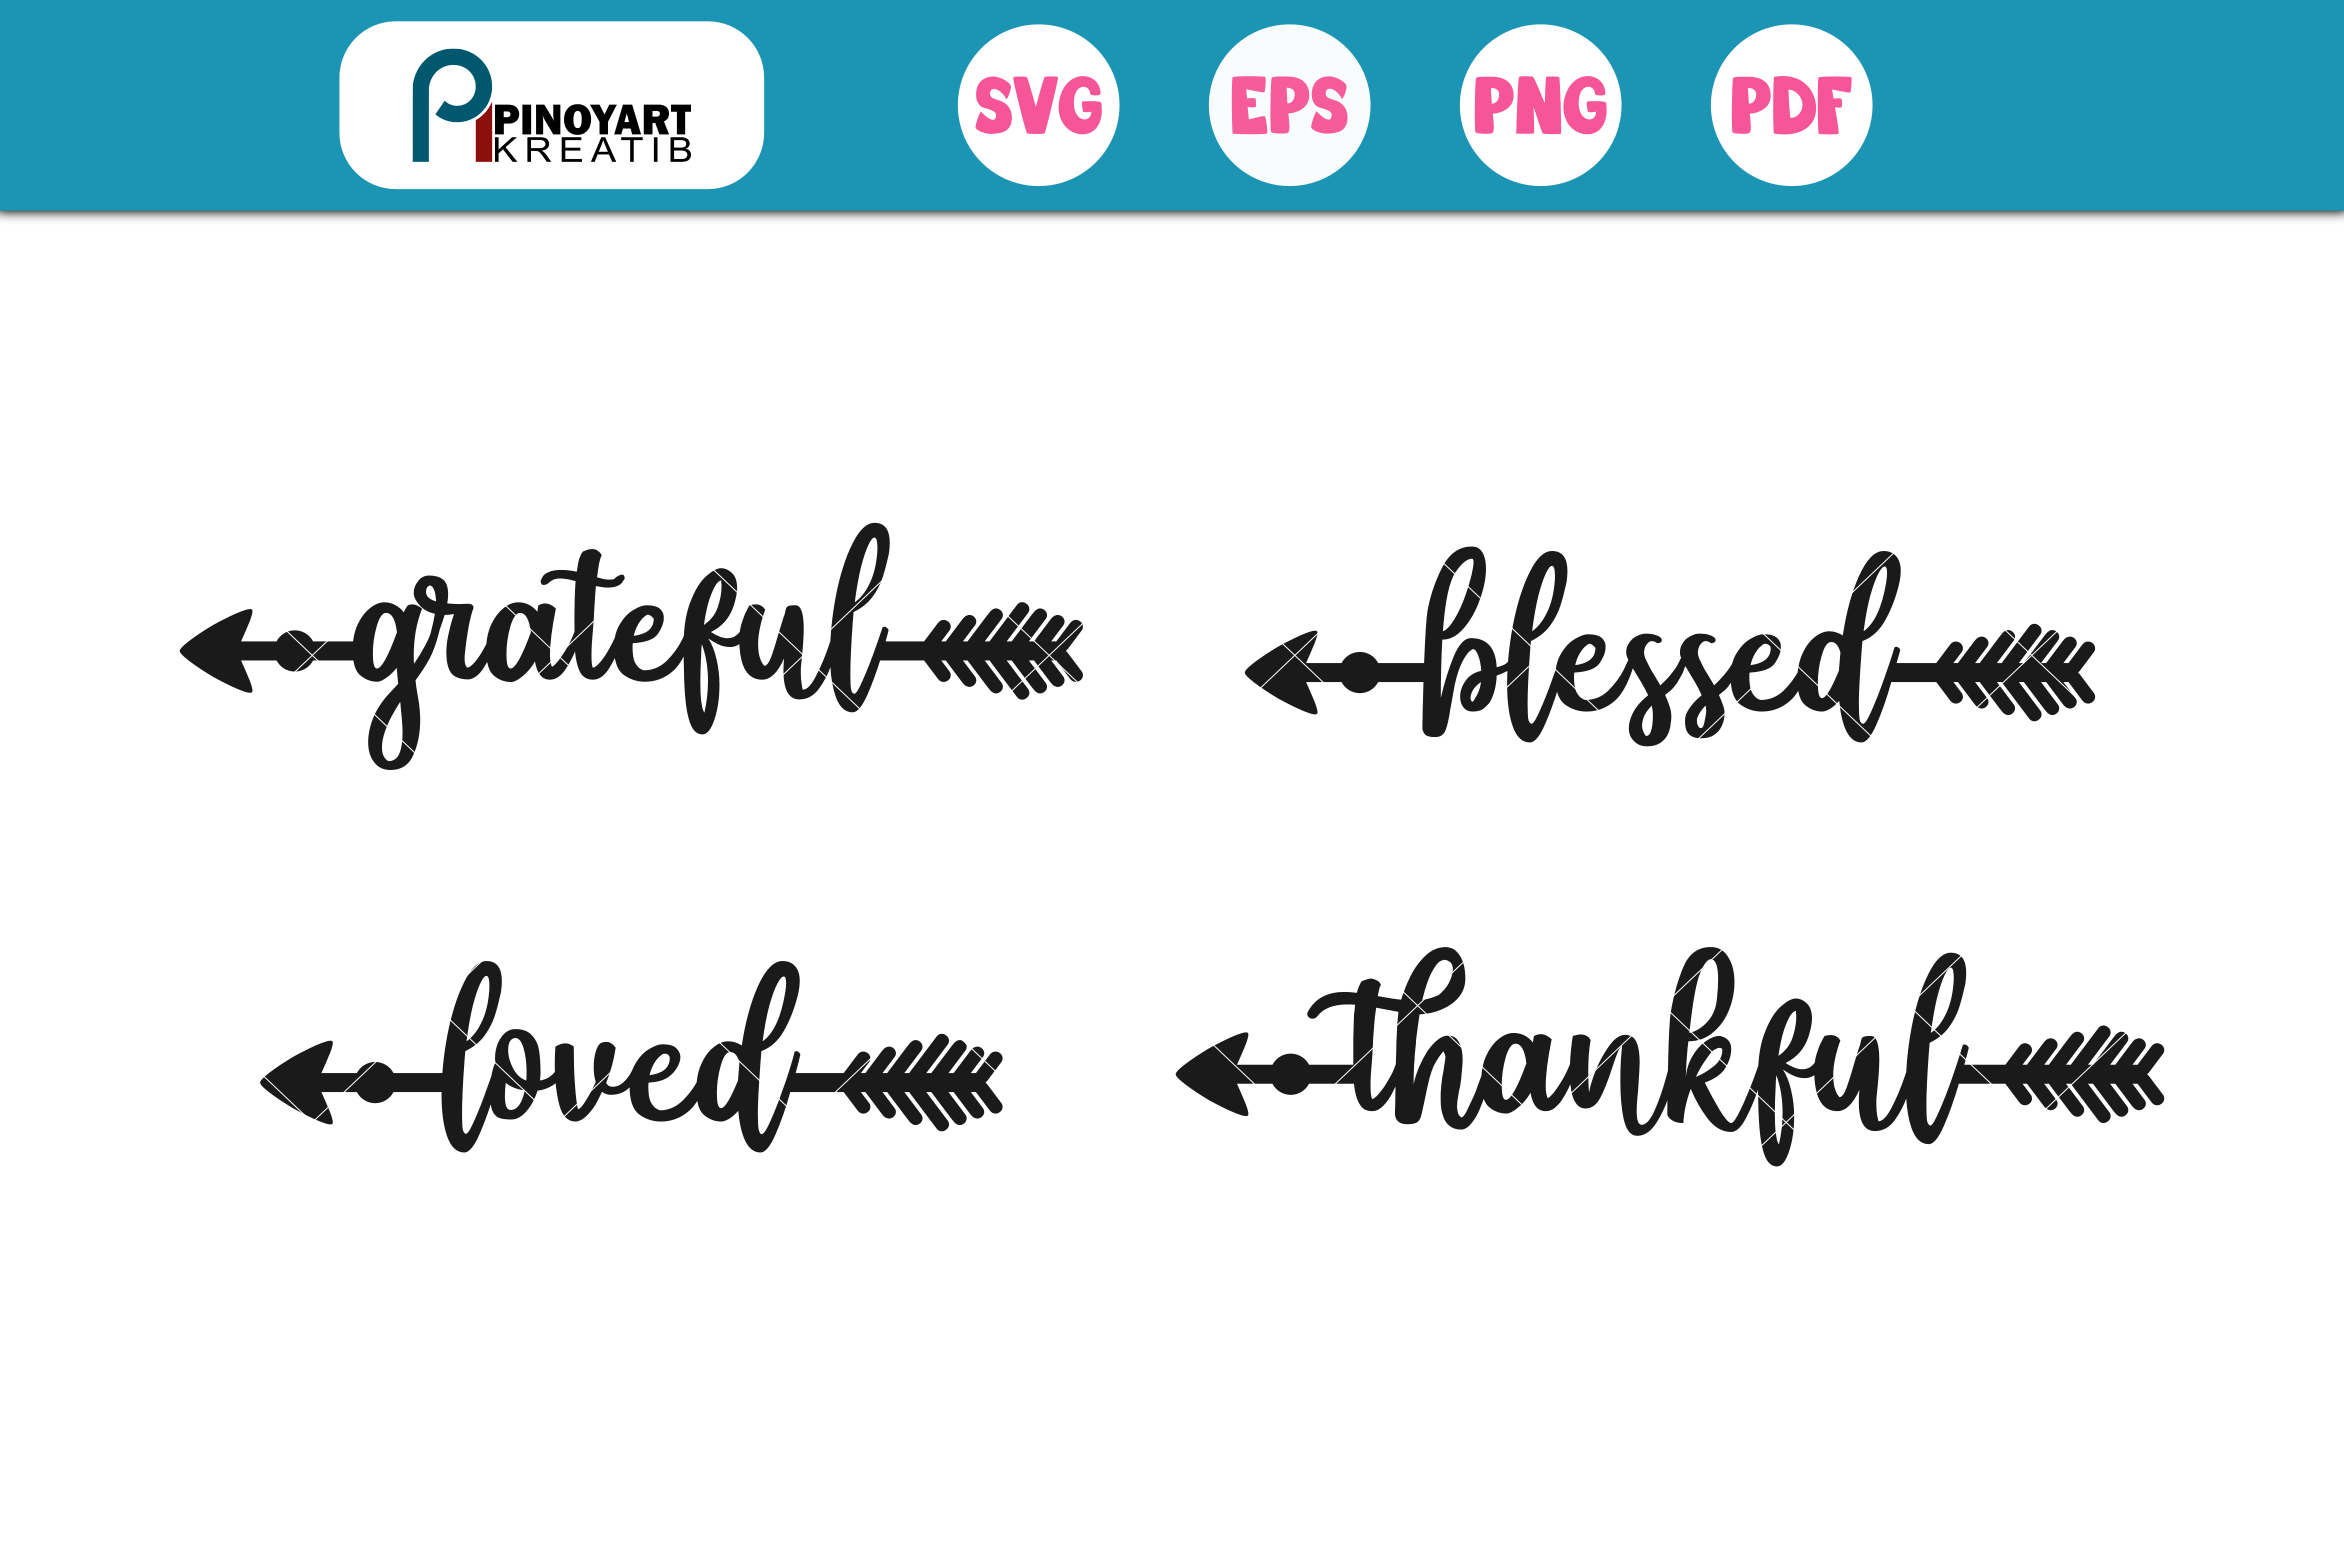 Download Free 4 Arrow Words Graphic By Pinoyartkreatib Creative Fabrica for Cricut Explore, Silhouette and other cutting machines.